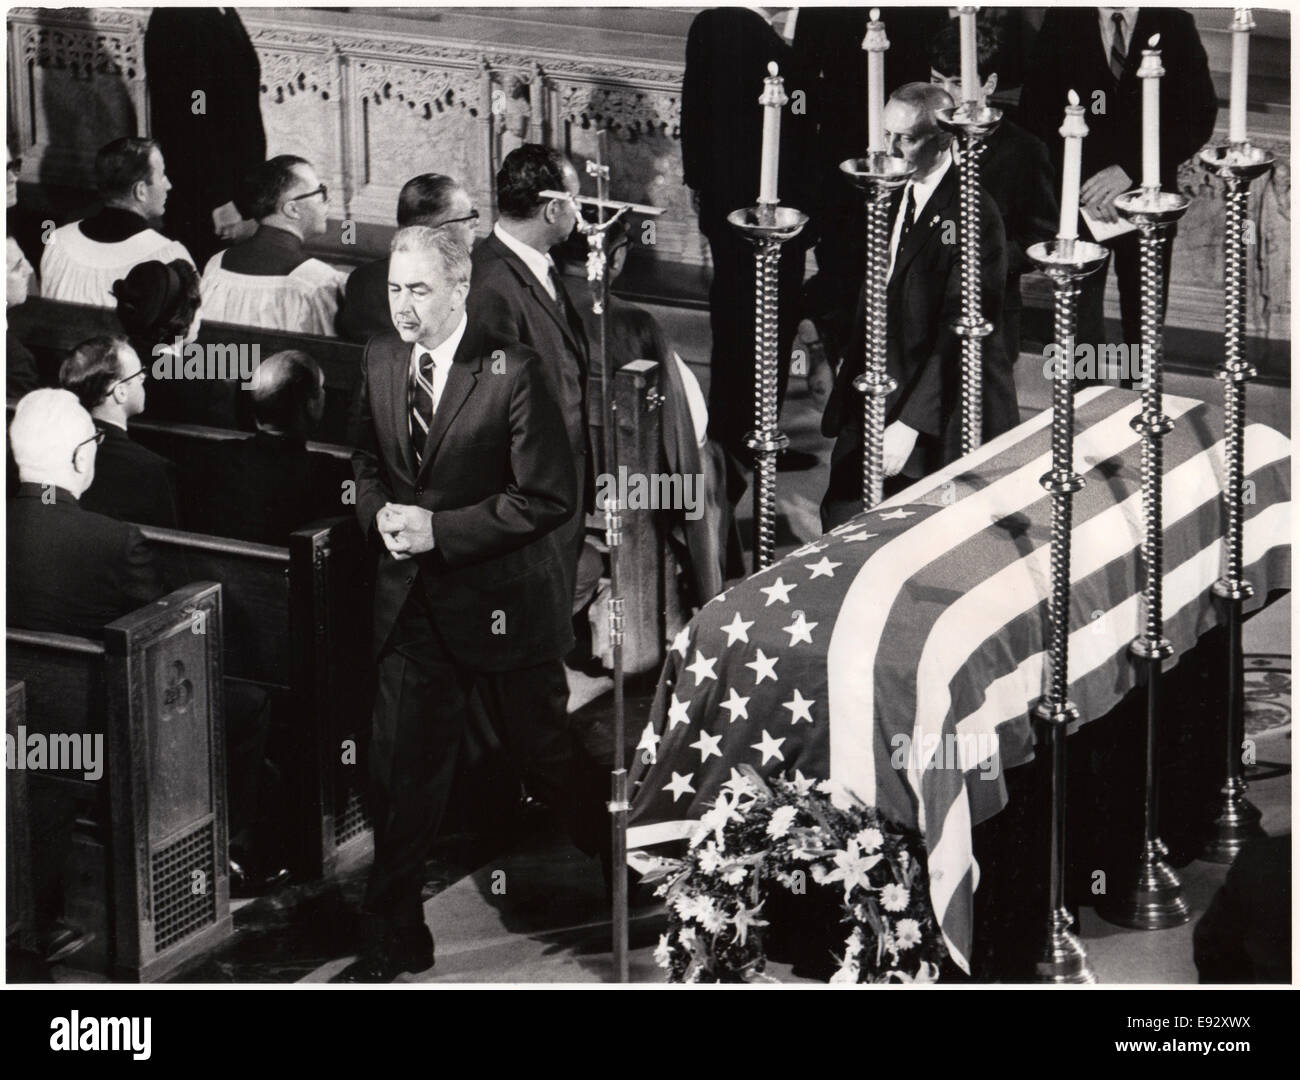 Senator Eugene McCarthy Passing Casket of Robert F. Kennedy after Receiving Communion, St. Patrick's Cathedral, - Stock Image